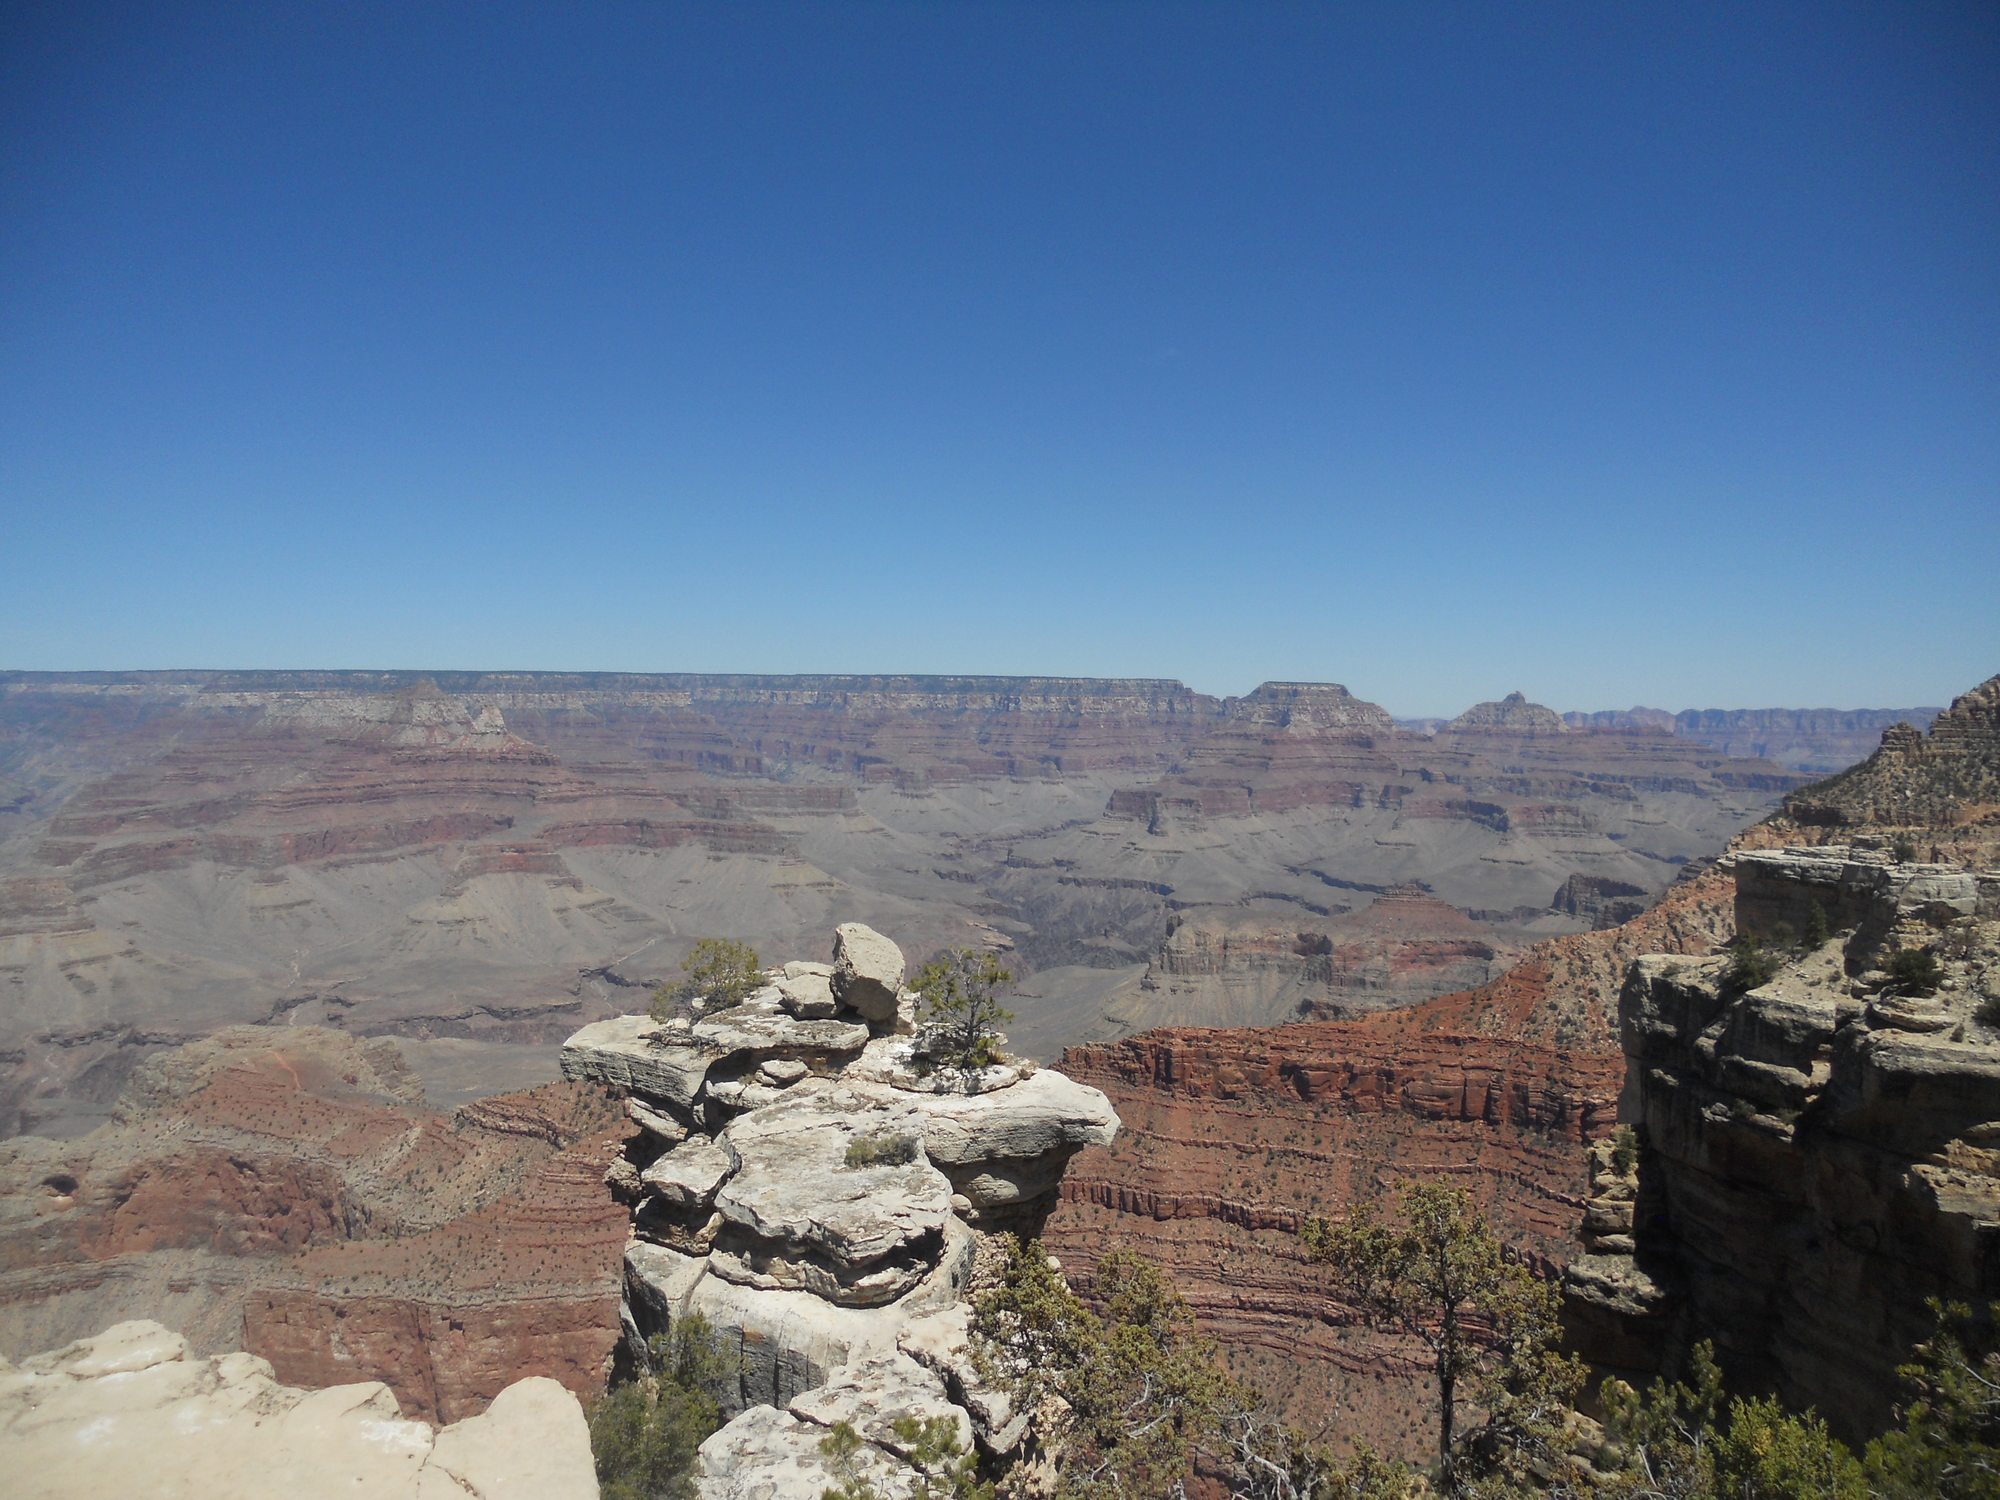 Unpopular Opinion: The Canyon, Not So Grand